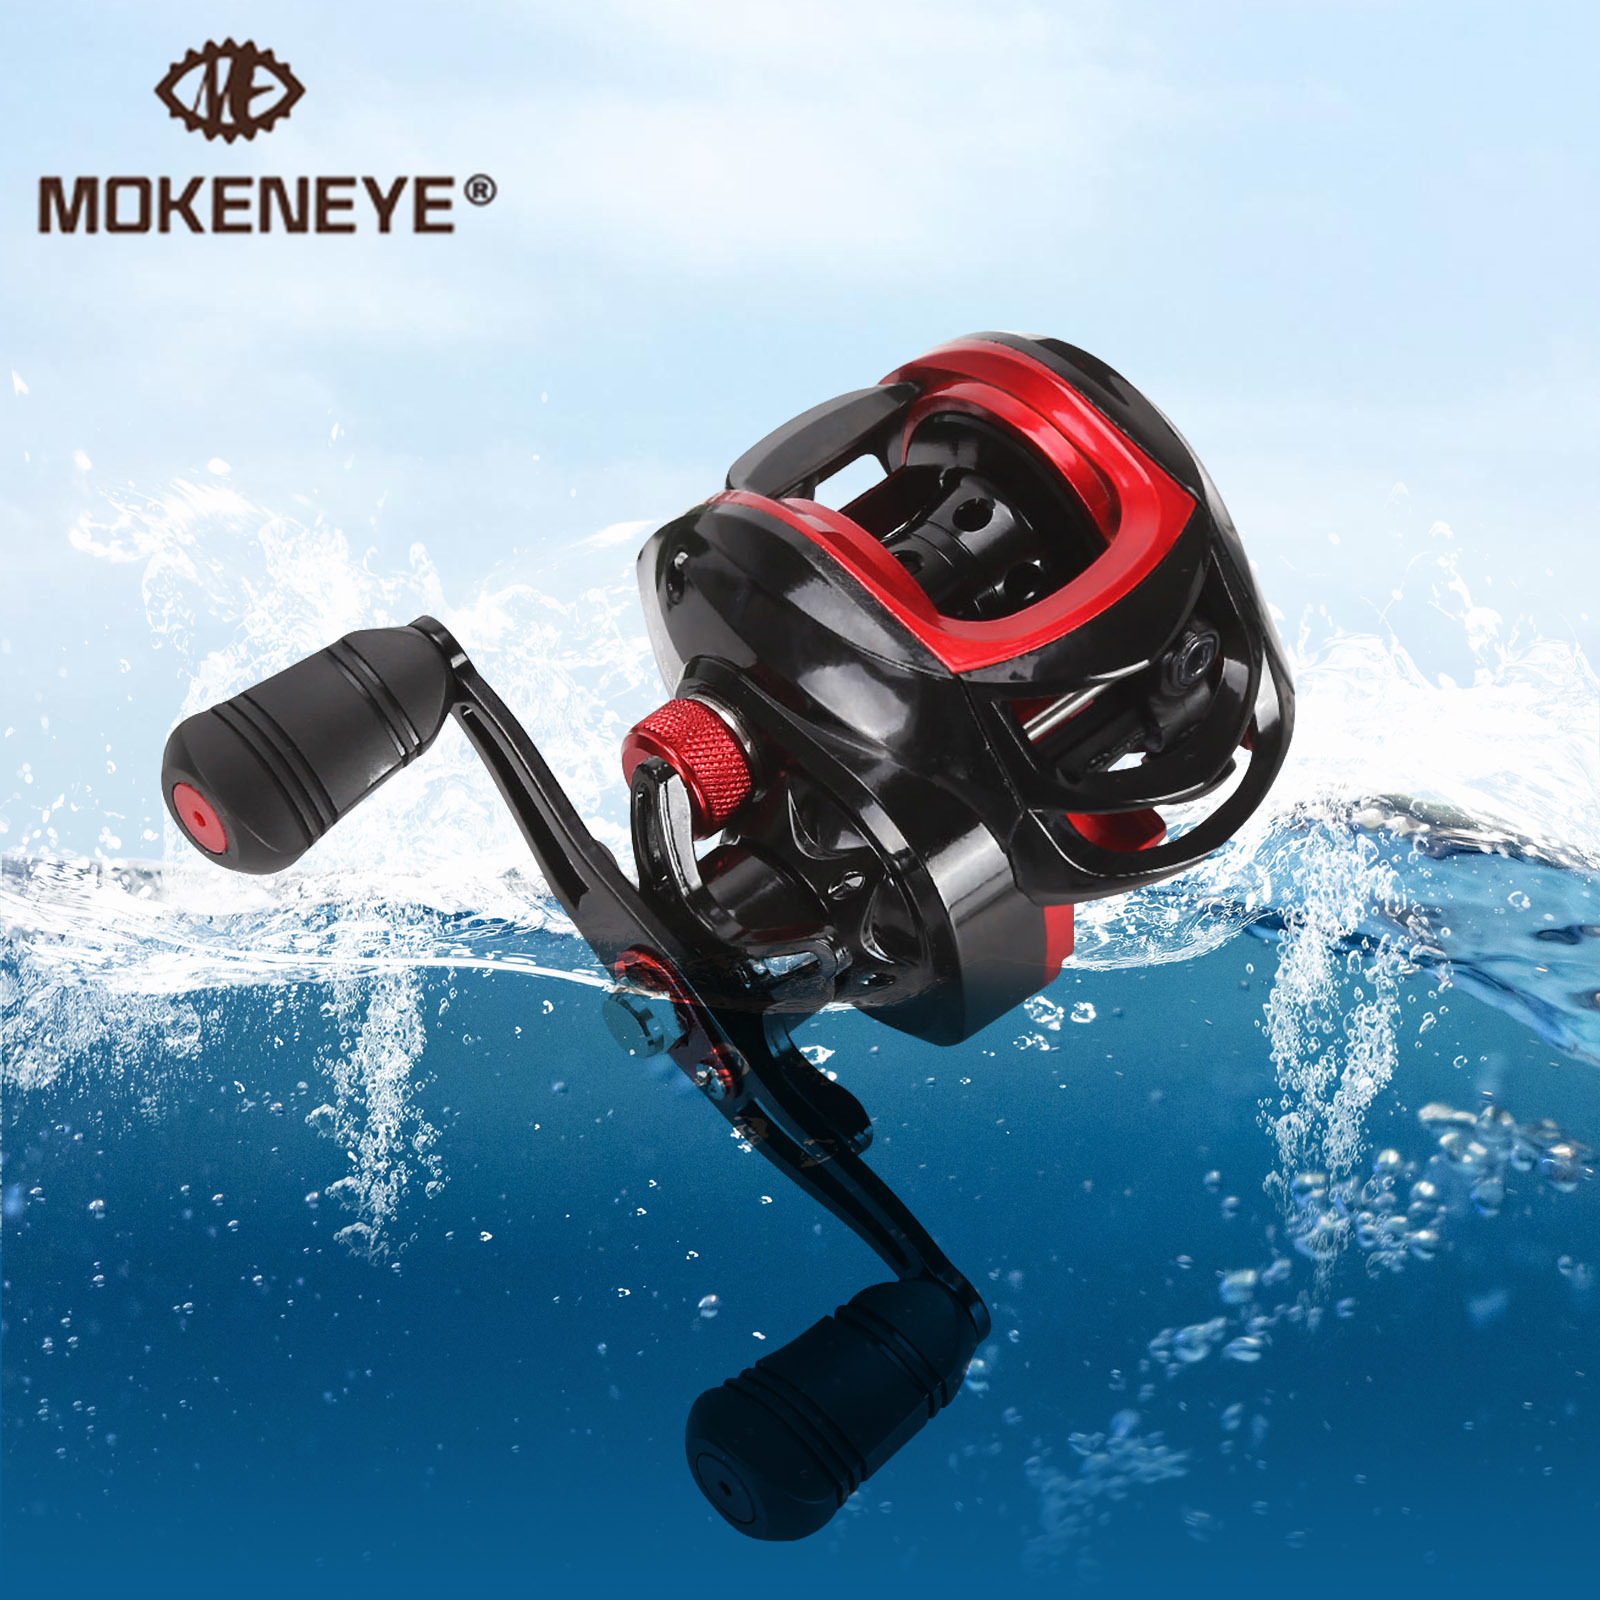 8KG Max Drag Fishing Reel 7.2:1 Bait Casting Reel Line Spool Saltwater Aluminium Freshwater Area 18 Bearings Fishing Accessories|Fishing Reels| - AliExpress